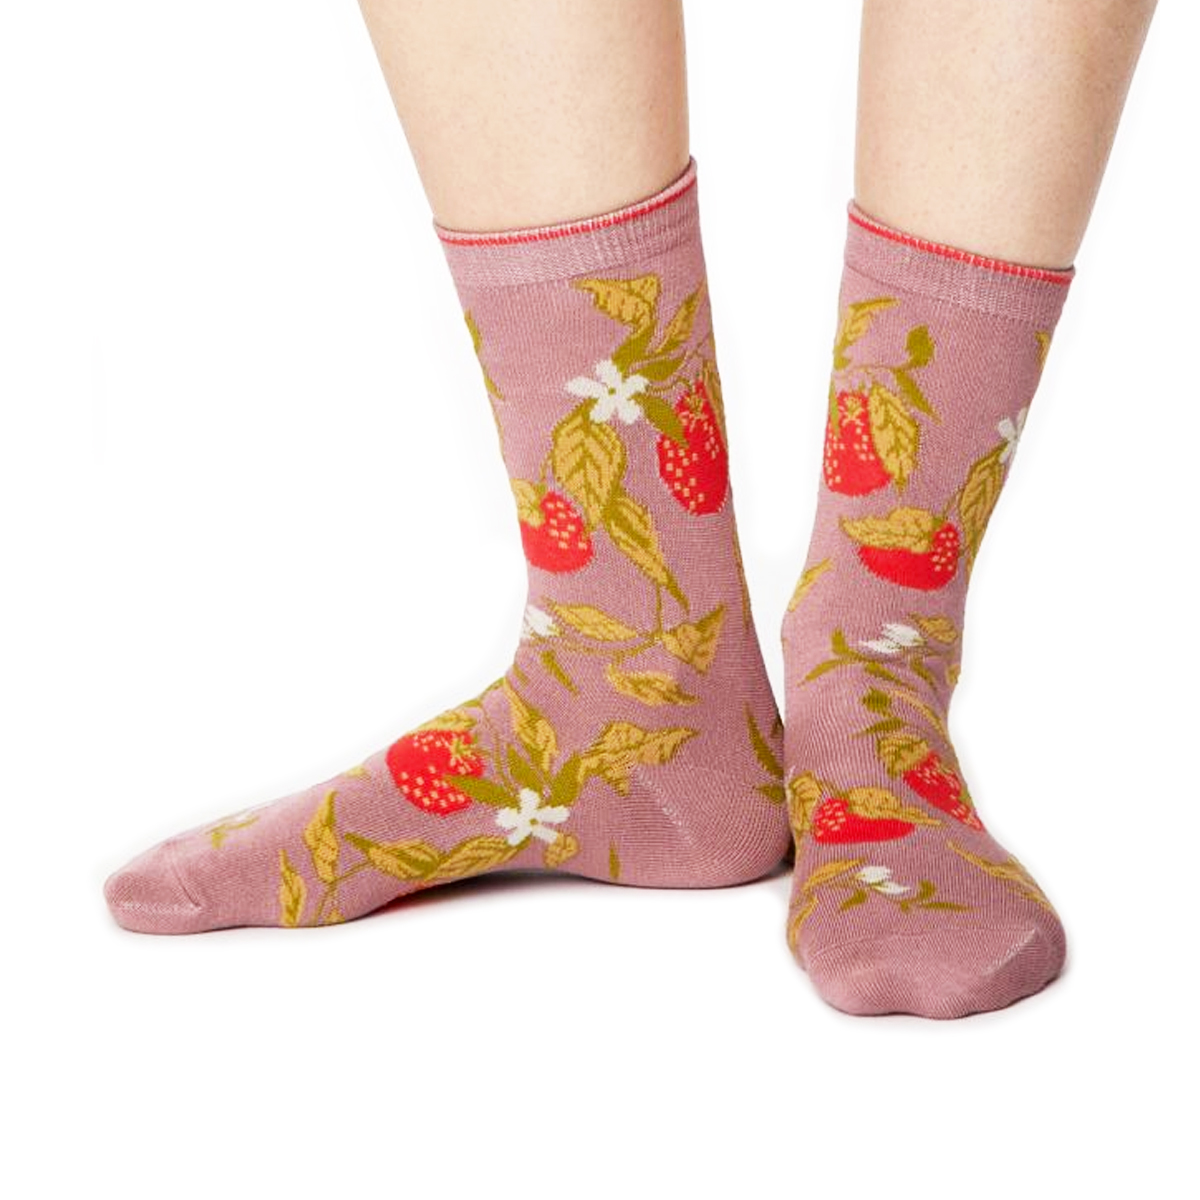 Pink floral socks by Thought Socks